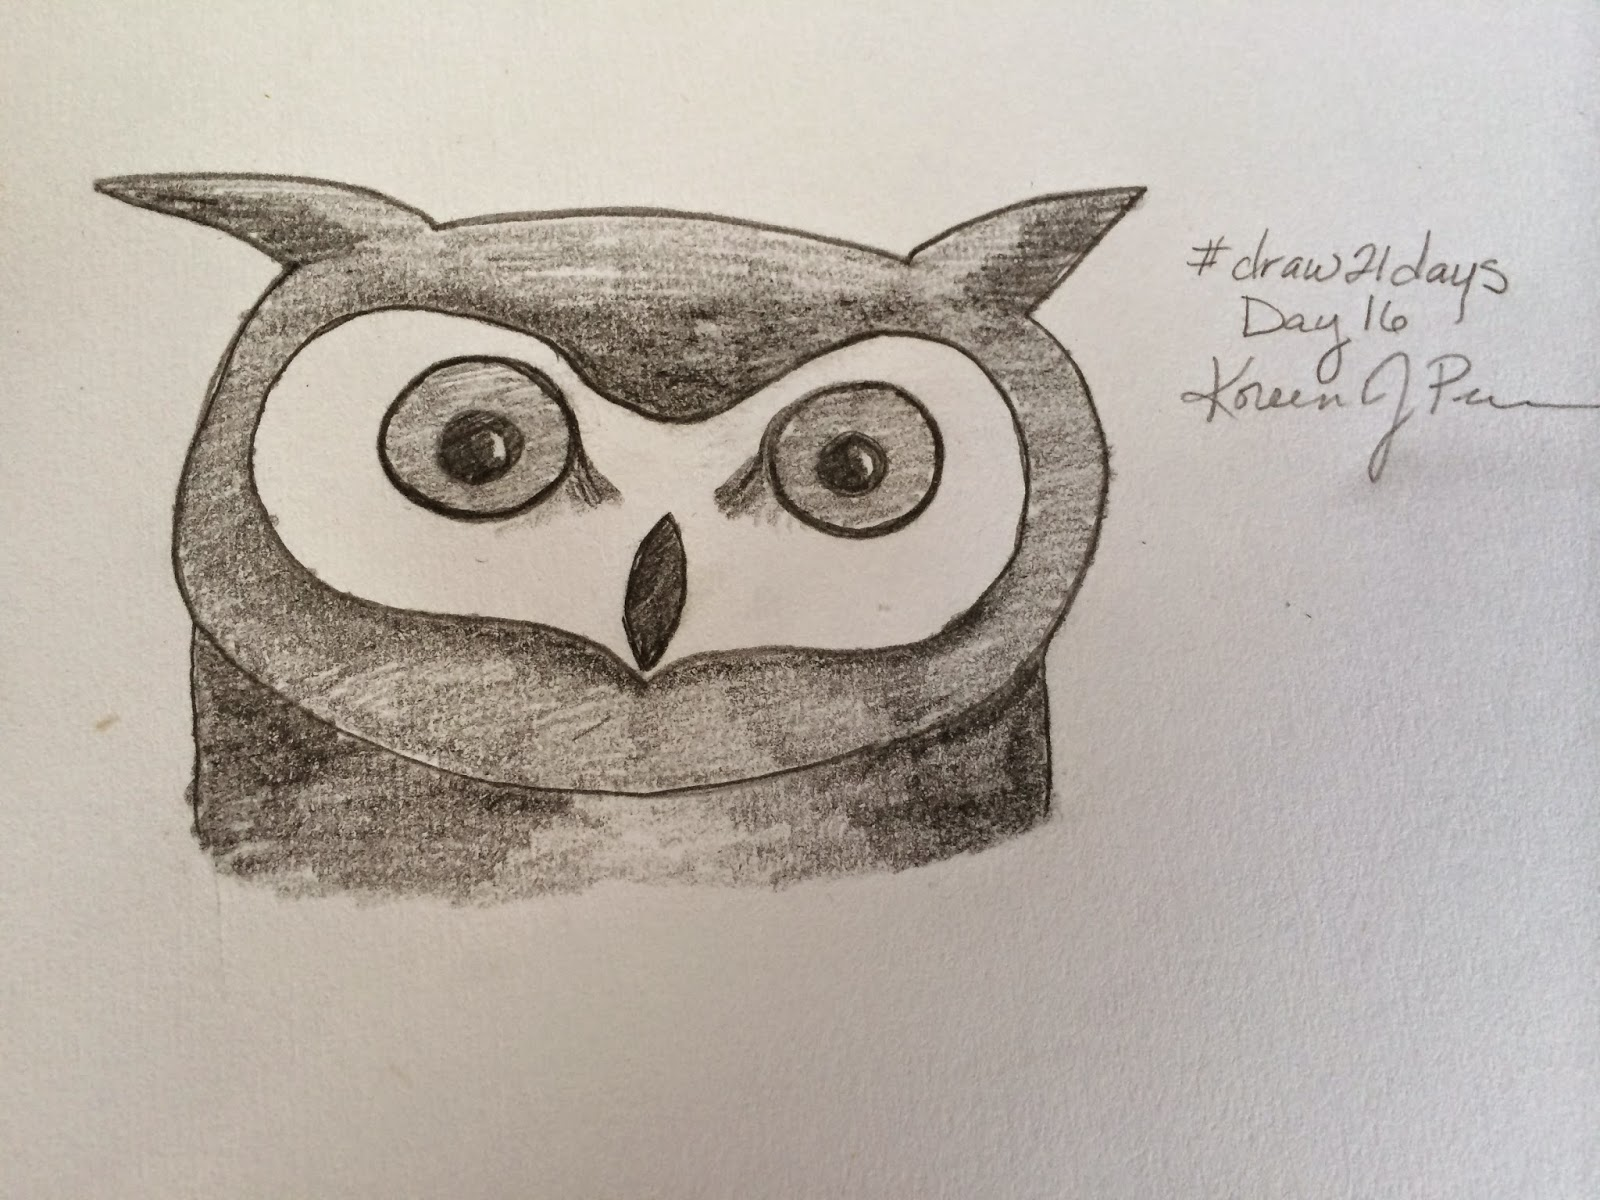 learning in tandem draw21days day 16 drawing design u0026 day 17